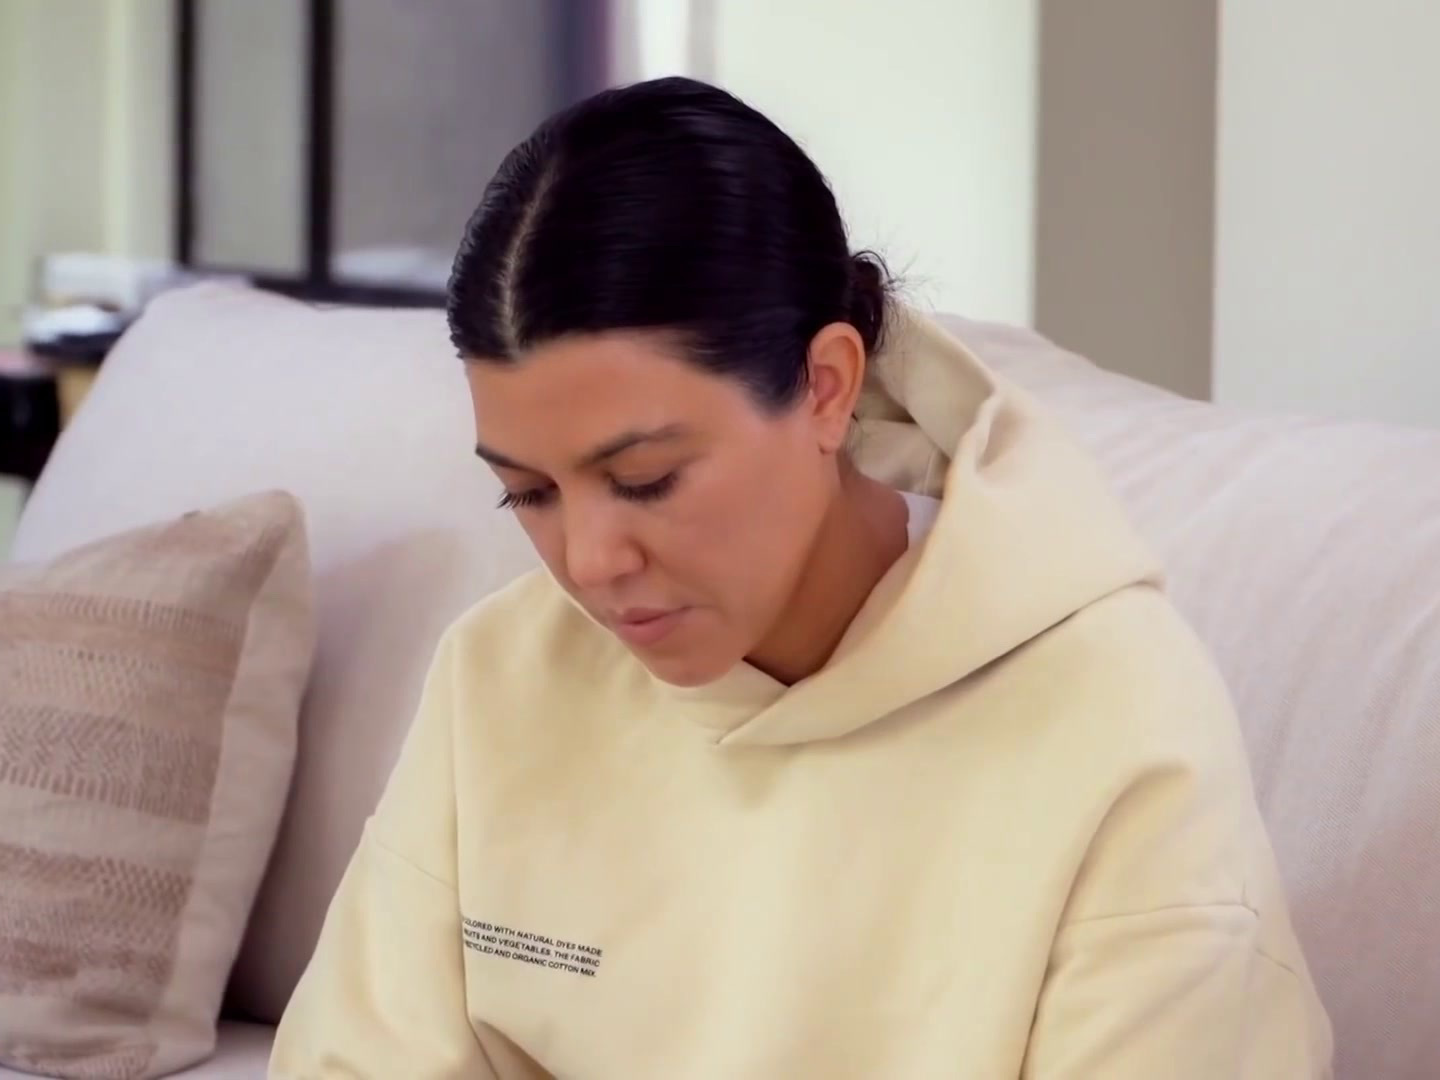 Keeping Up with the Kardashians: Scott Disick Tells Kourtney Kardashian He's Going to Rehab